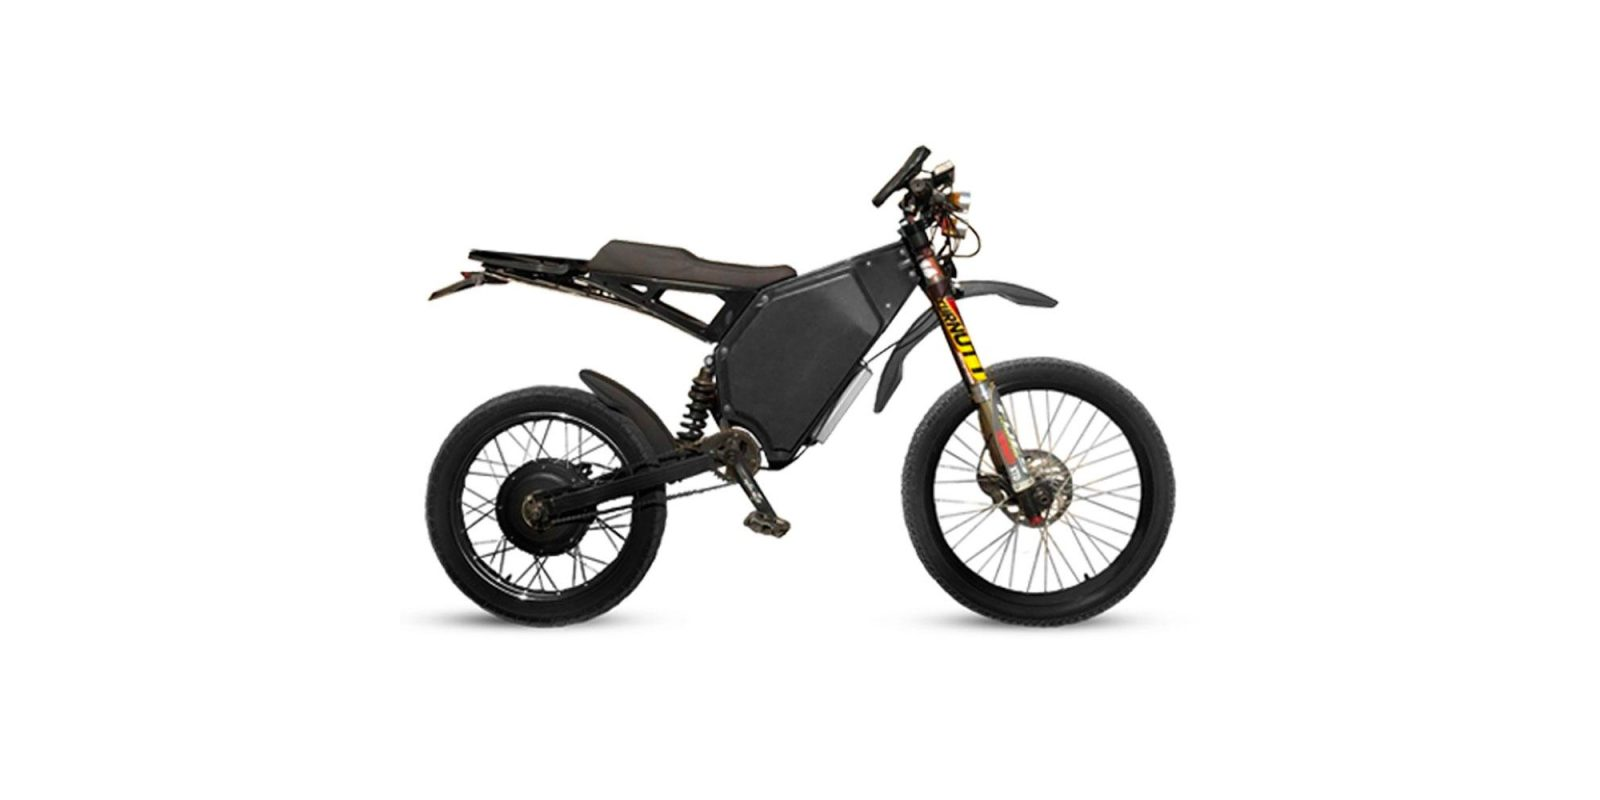 Delfast's new 50 mph (80 km/h) electric bicycle stretches the word 'bicycle'